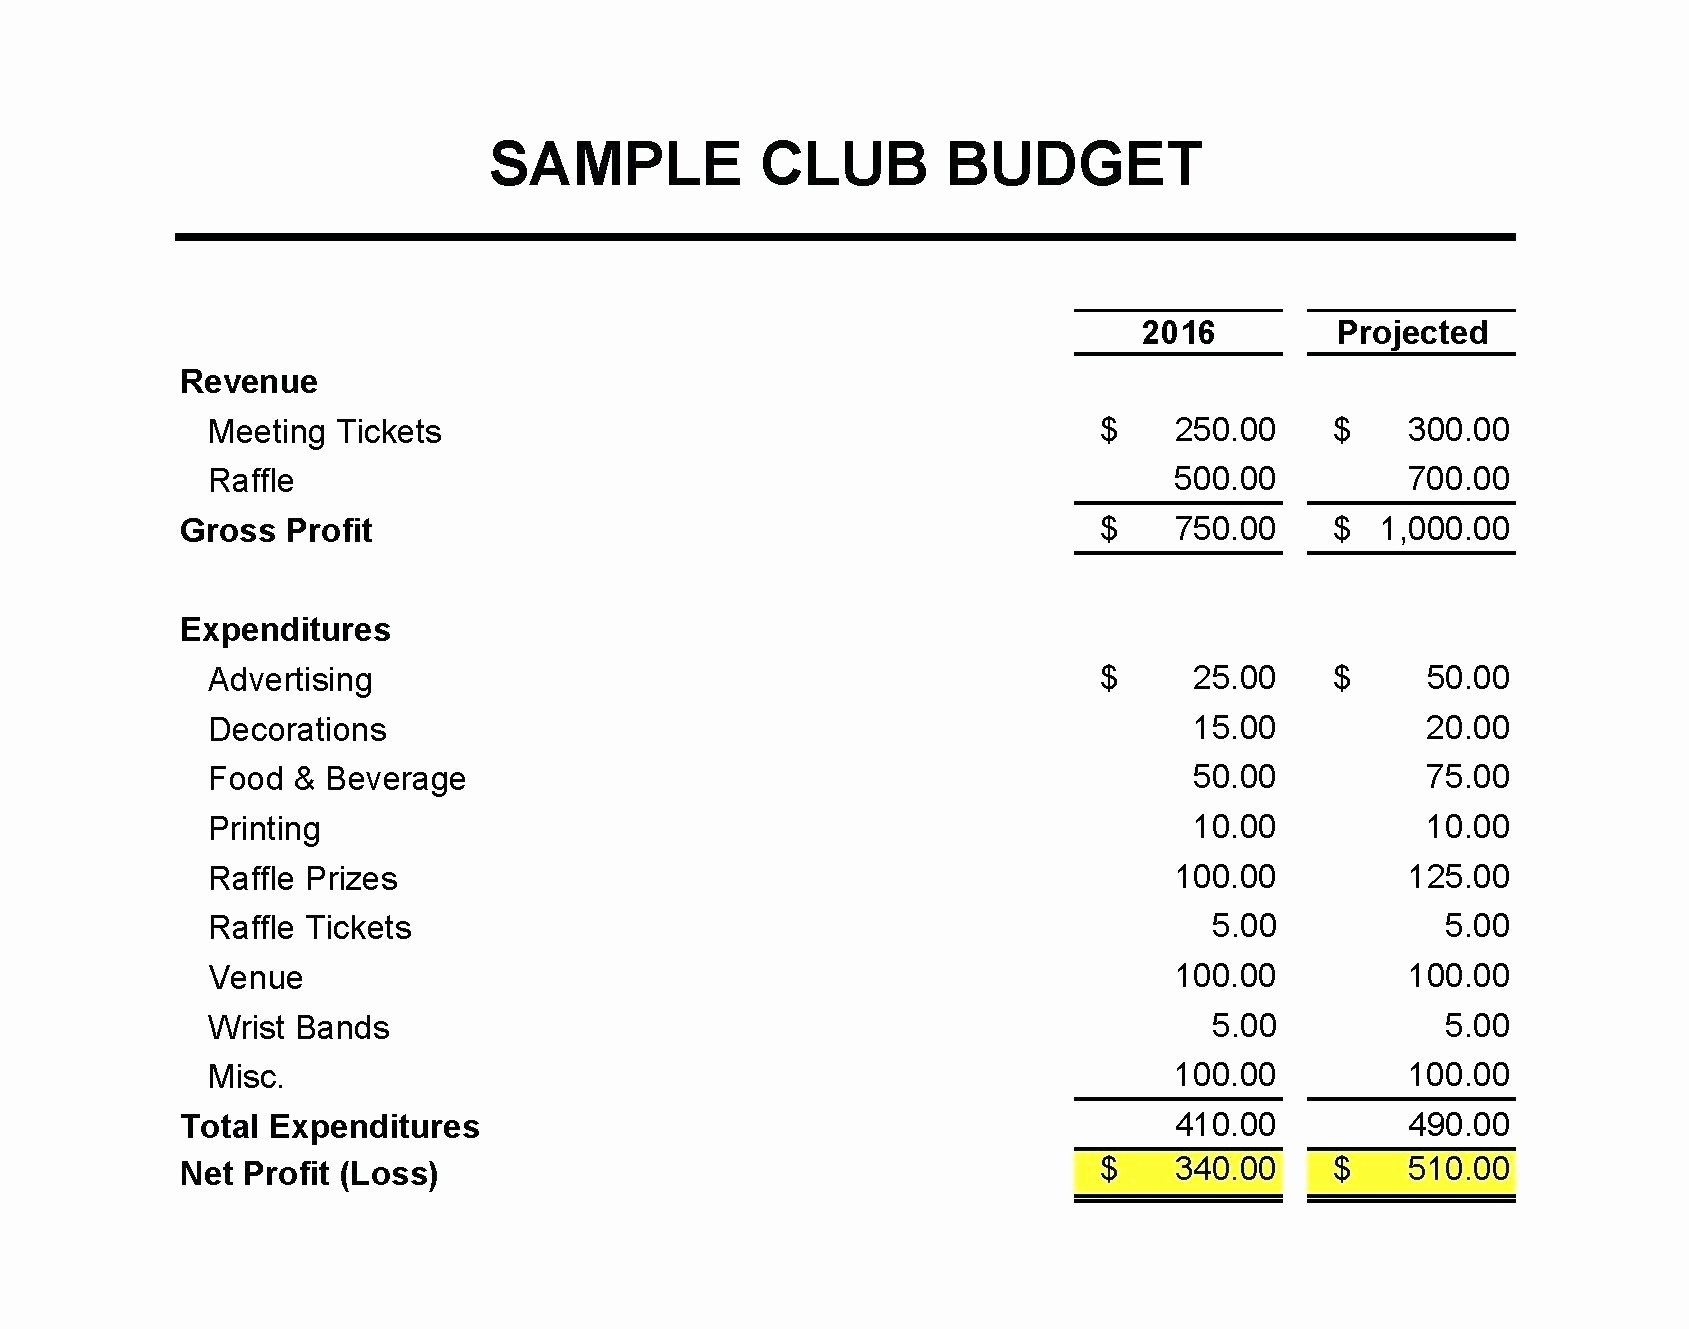 Treasurer Report Template Non Profit Lovely Of Ideas Outstanding Pertaining To Non Profit Treasurer Report Template